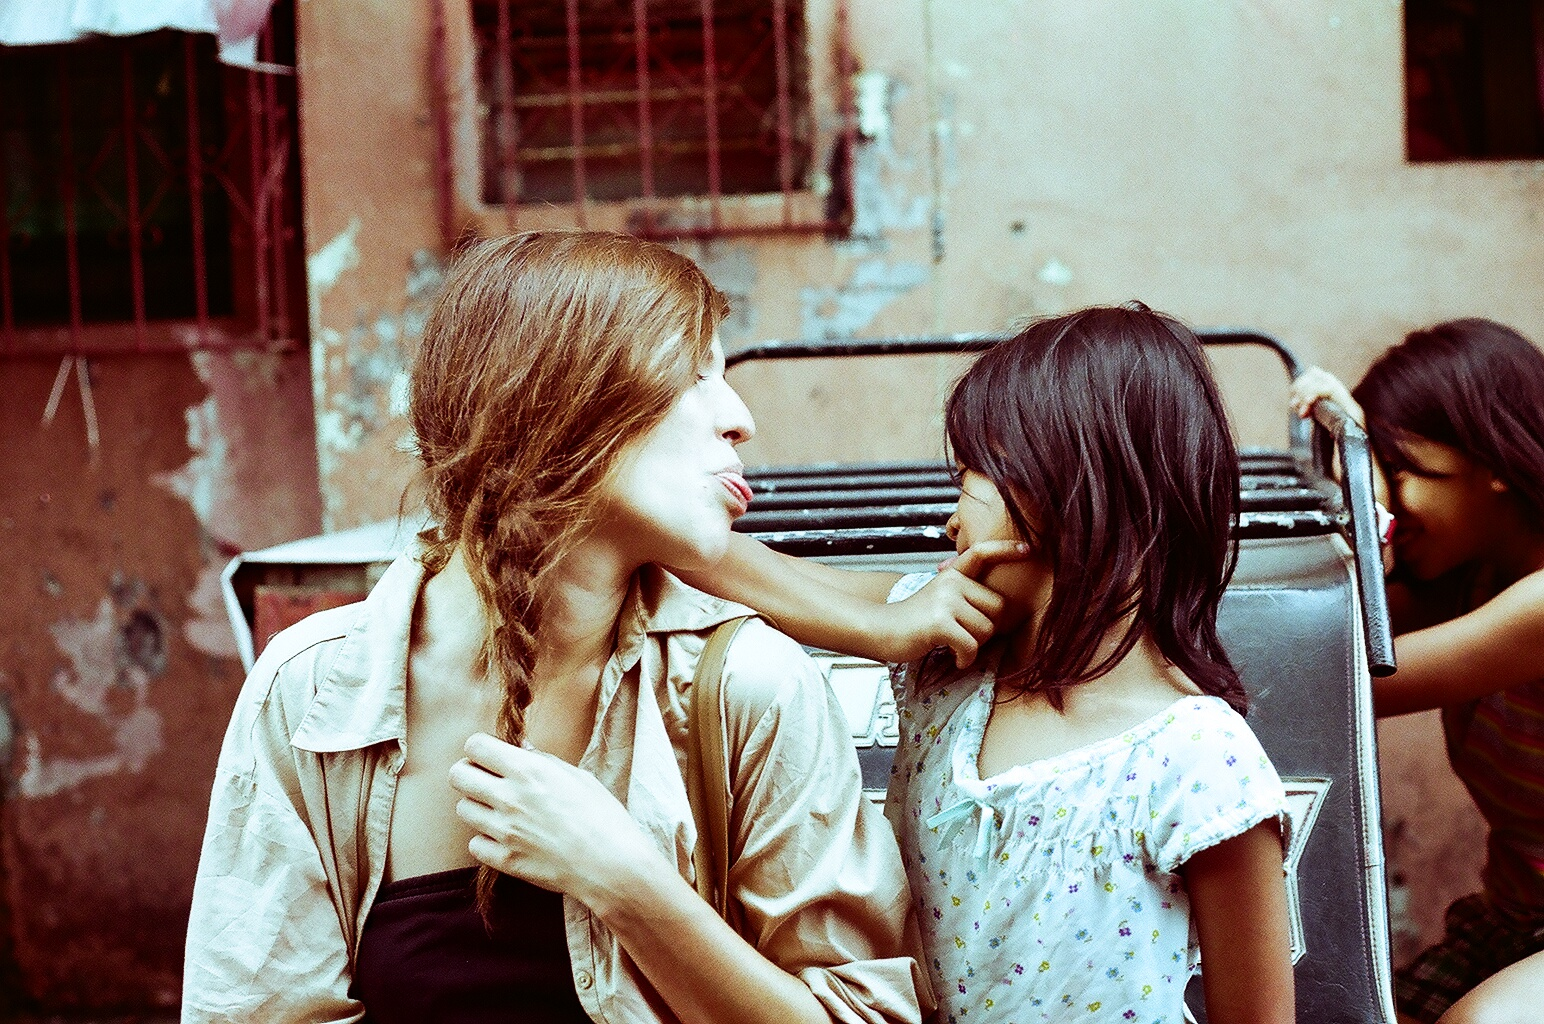 Marthe Olsen making faces with a little girl